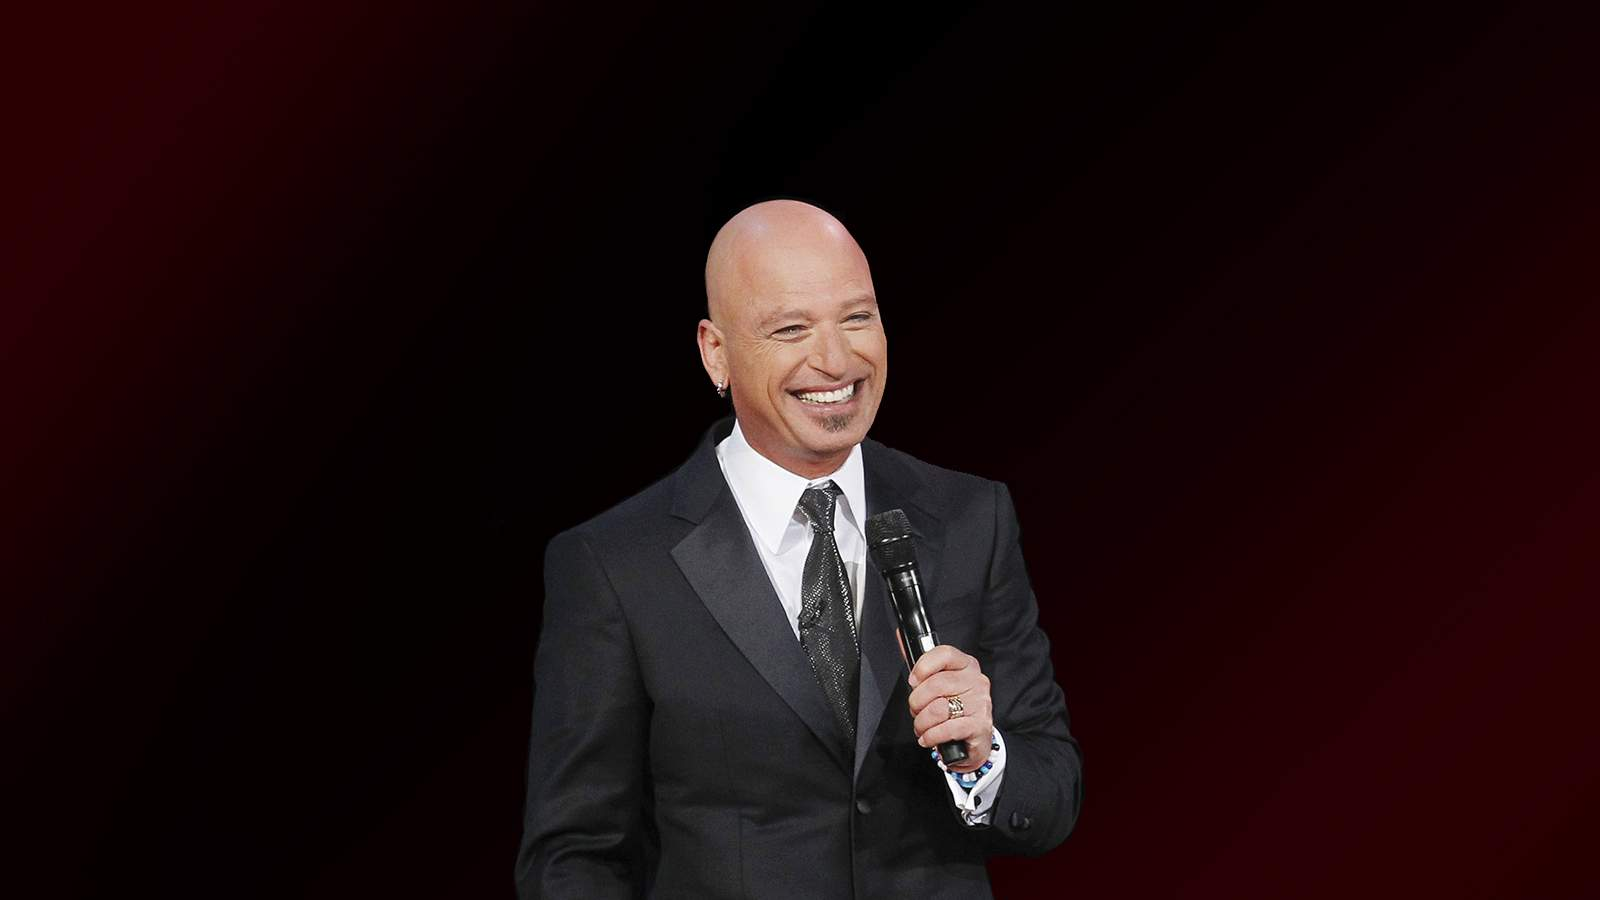 Howie Mandel (18+ Event) (Rescheduled from 3/28/2020, 9/4/2020)